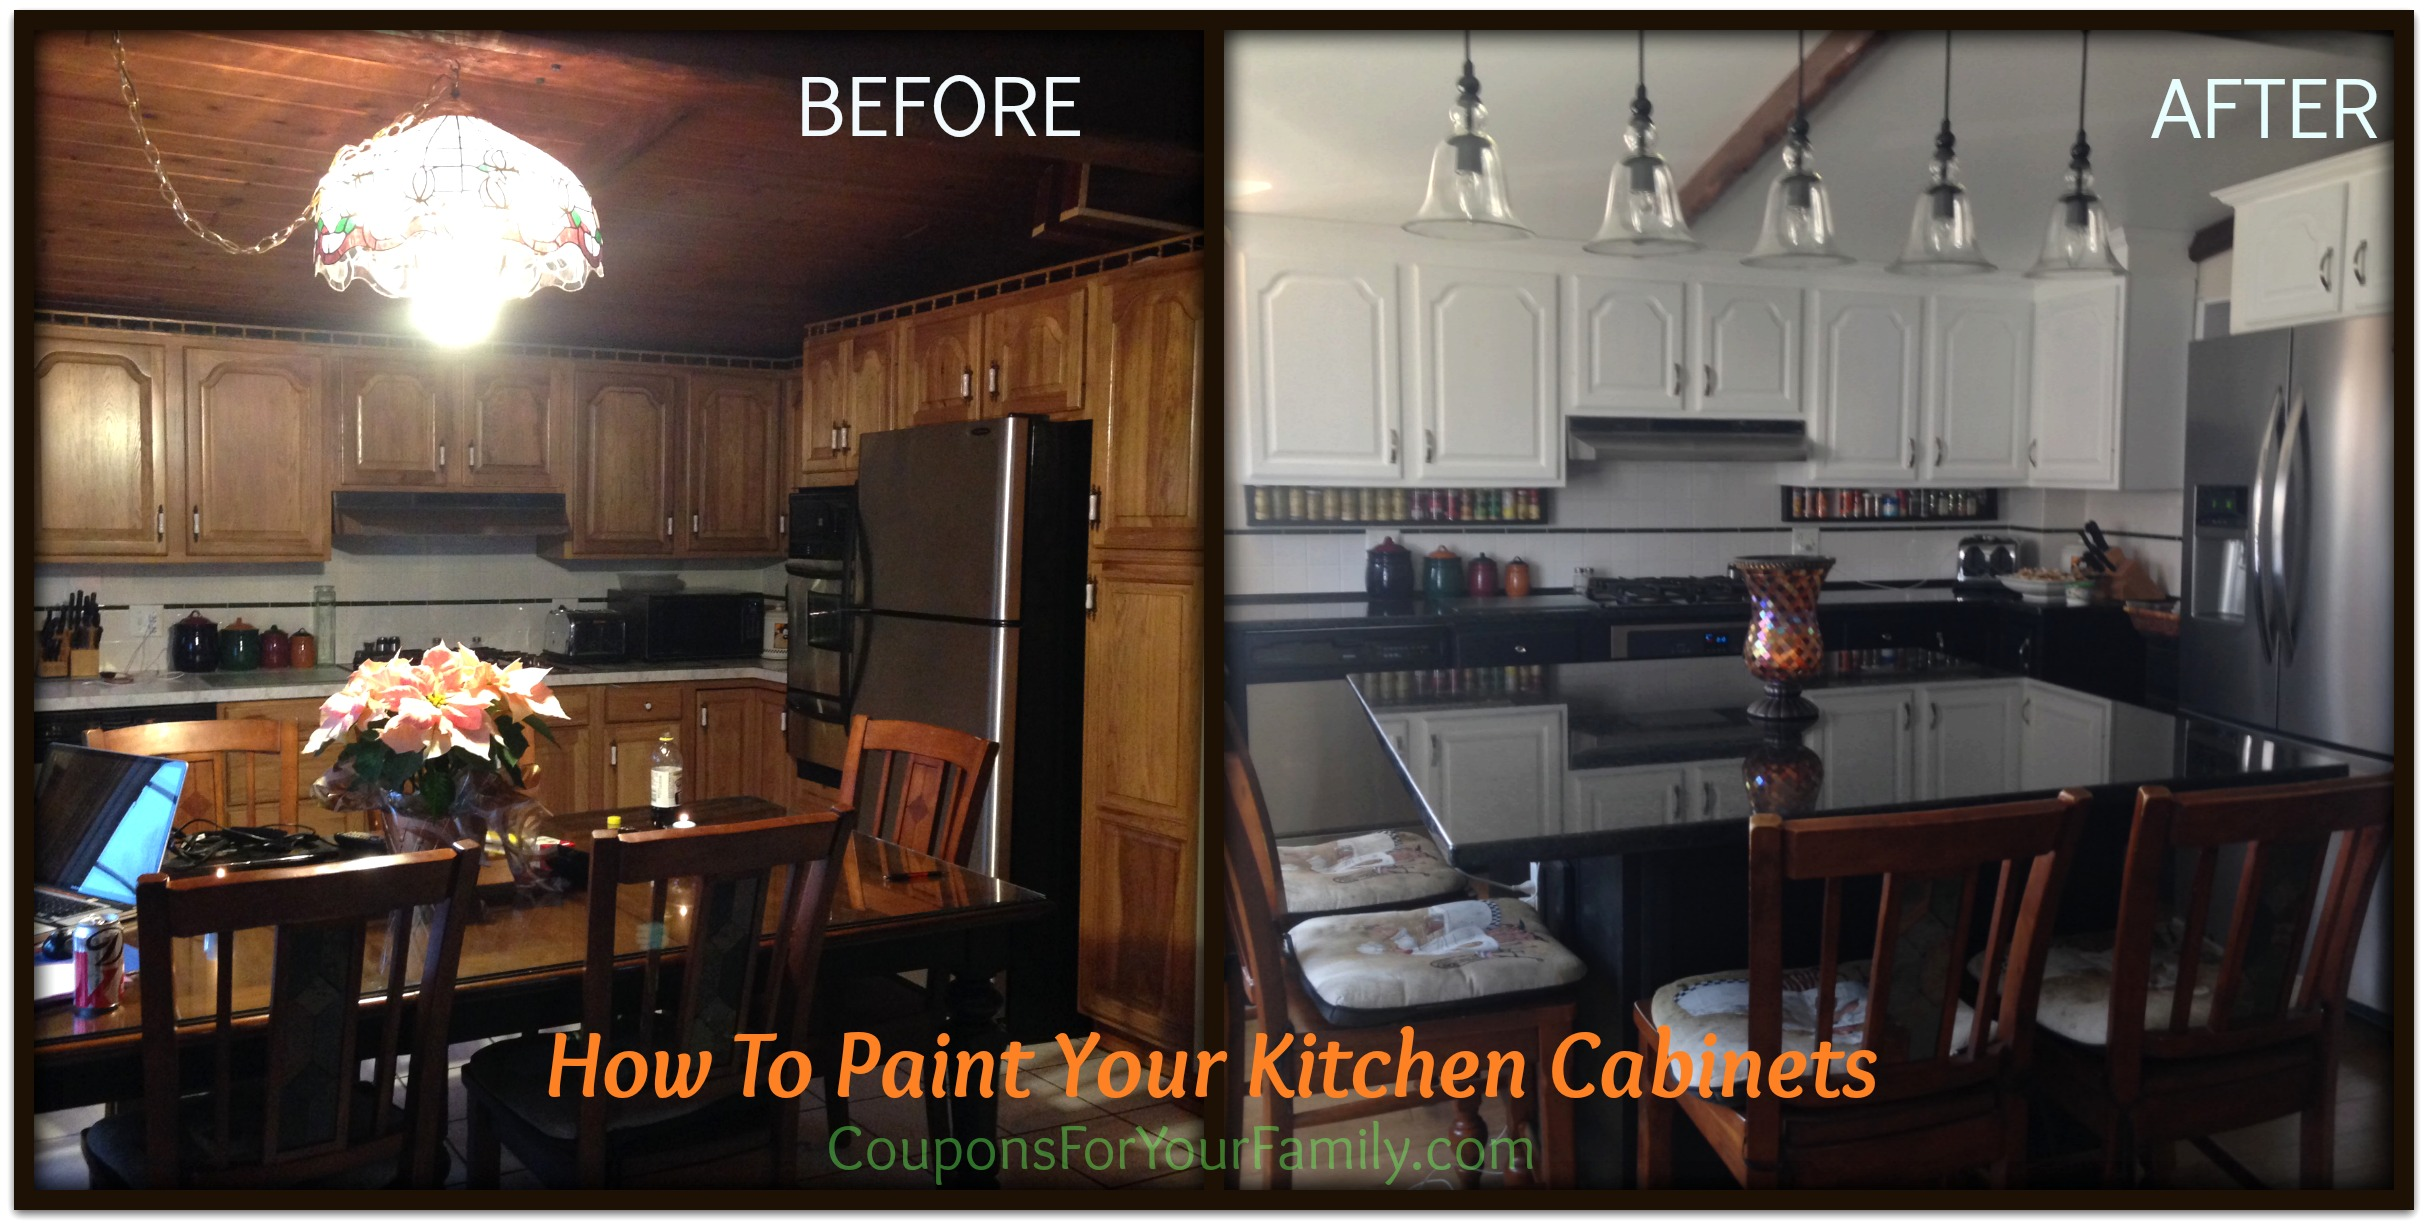 Do It Yourself and Save Project: How to Paint Oak Kitchen Cabinets